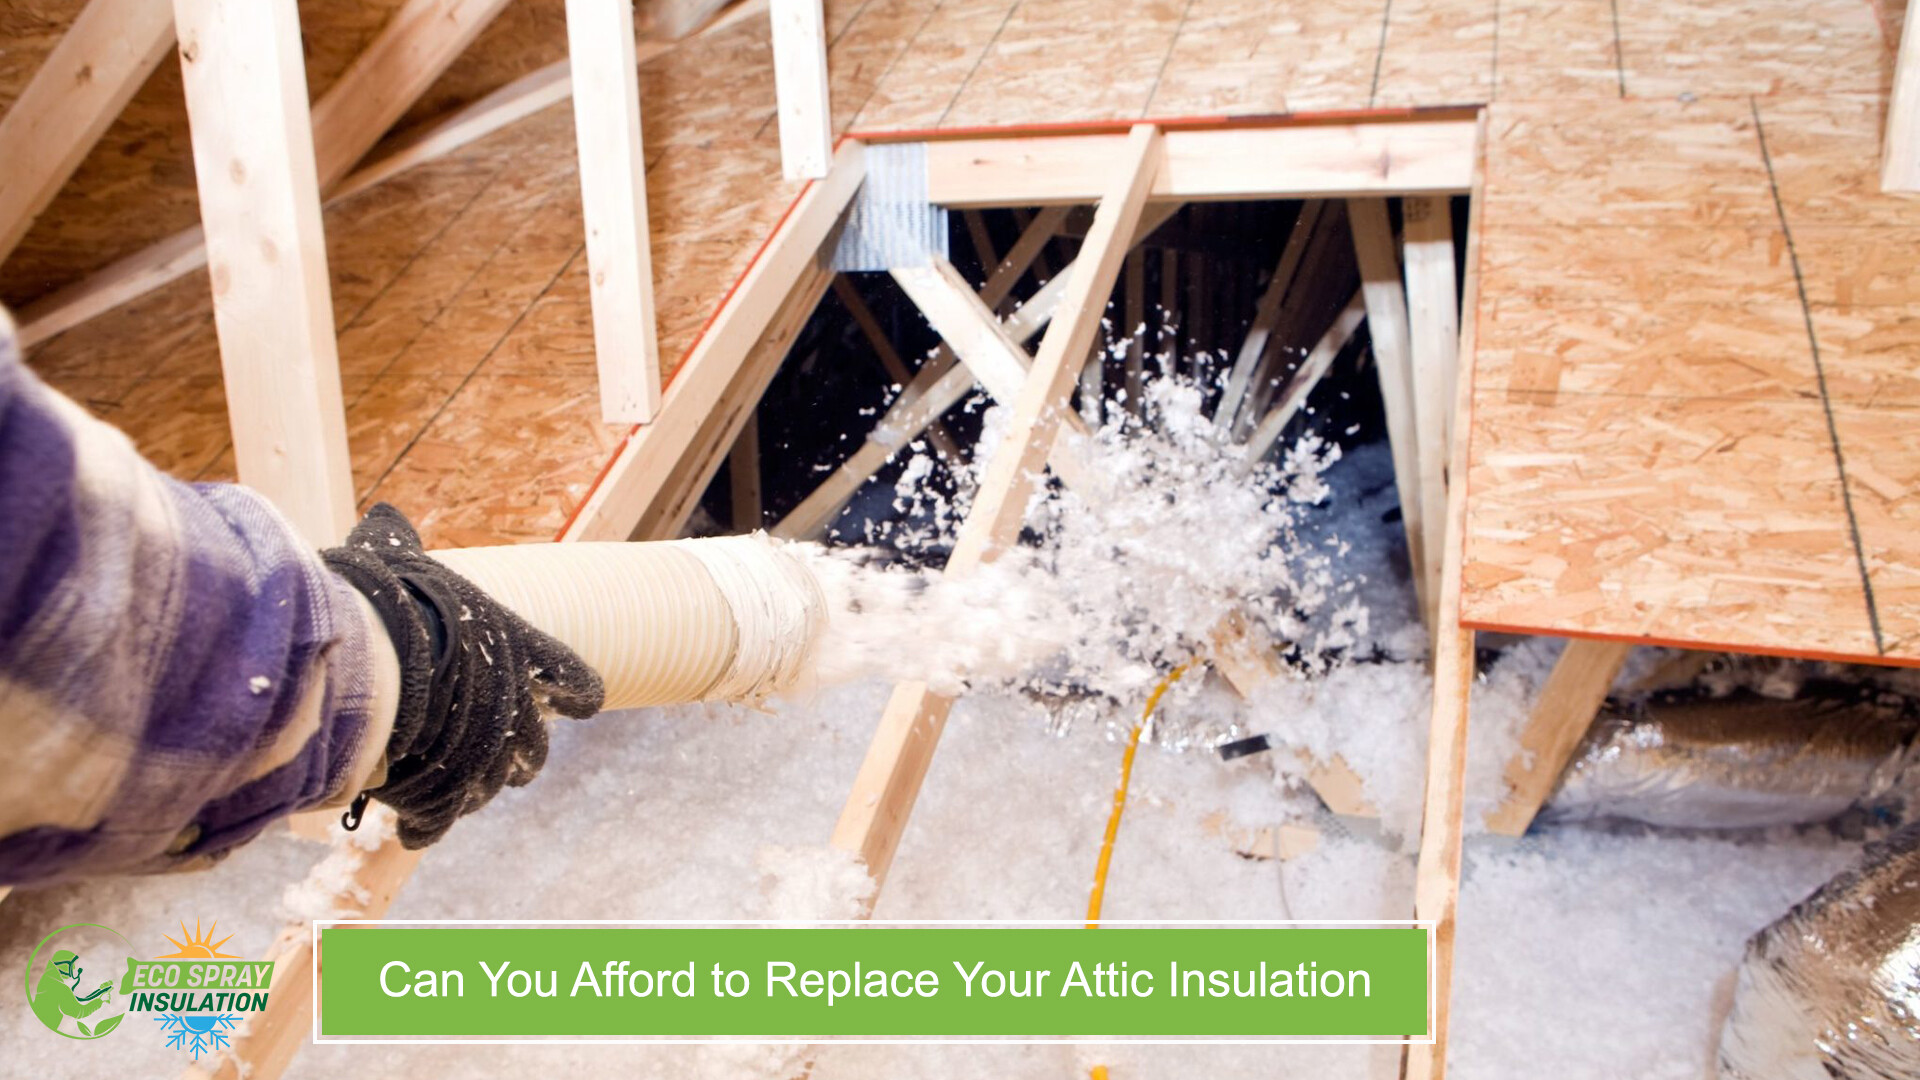 Can You Afford to Replace Your Attic Insulation